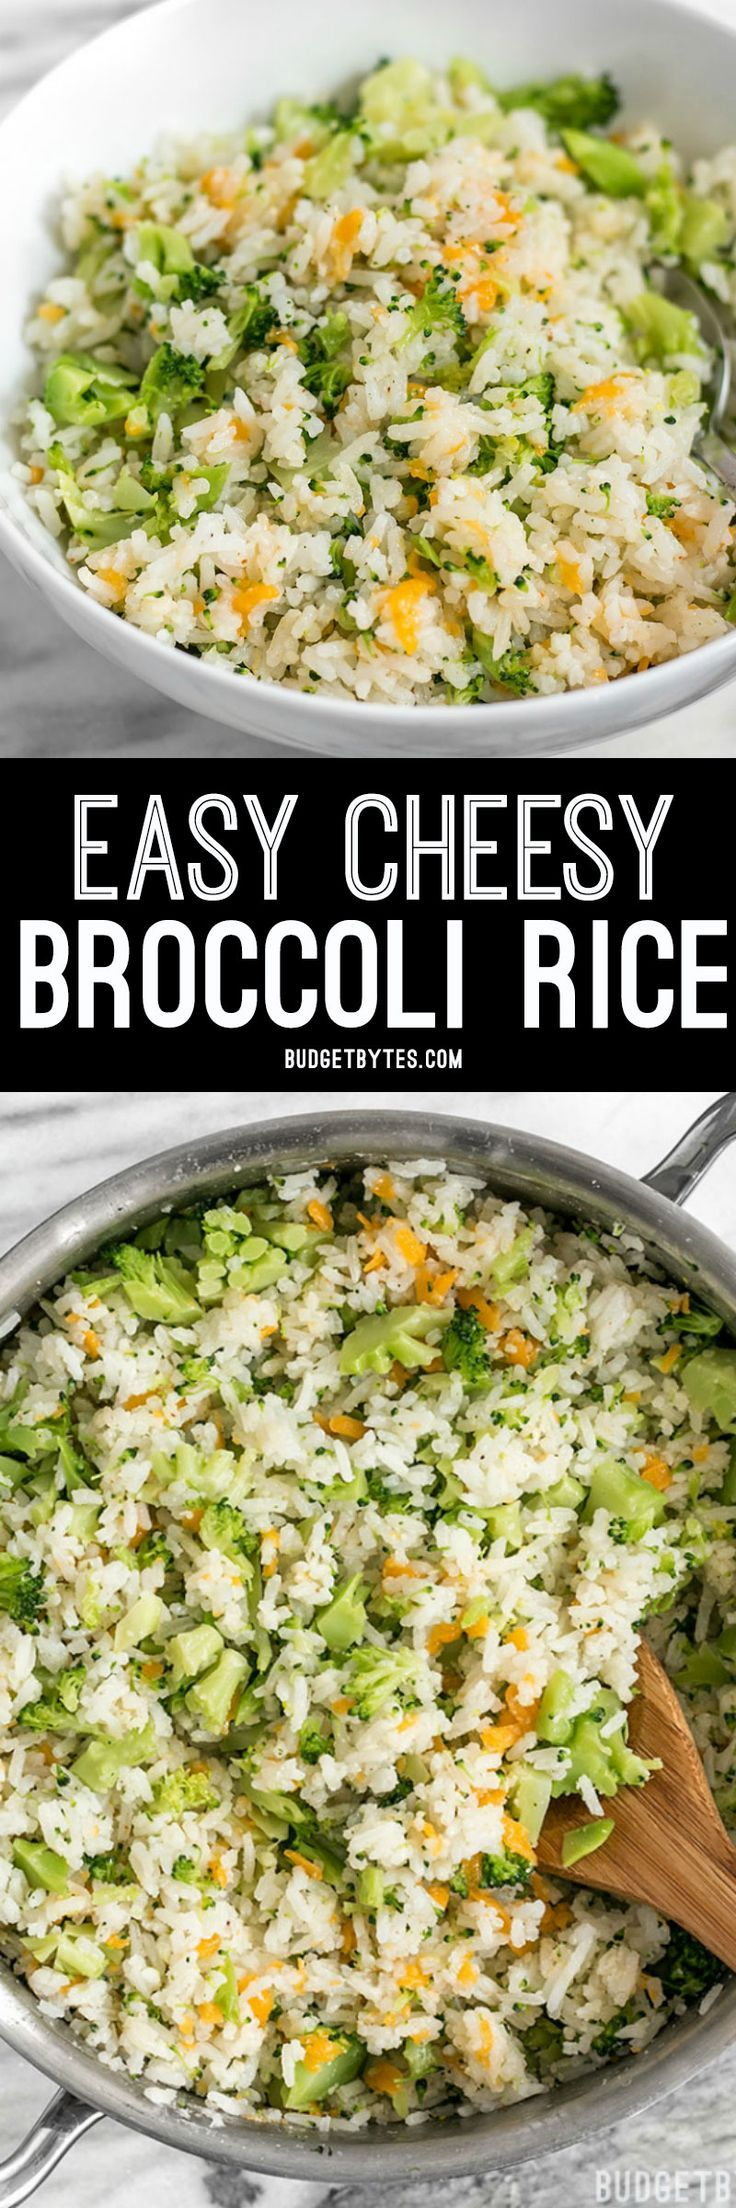 This Easy Cheesy Broccoli Rice is a fast and flavorful side when you don't have time to make a classic Broccoli Cheddar Casserole. @budgetbytes